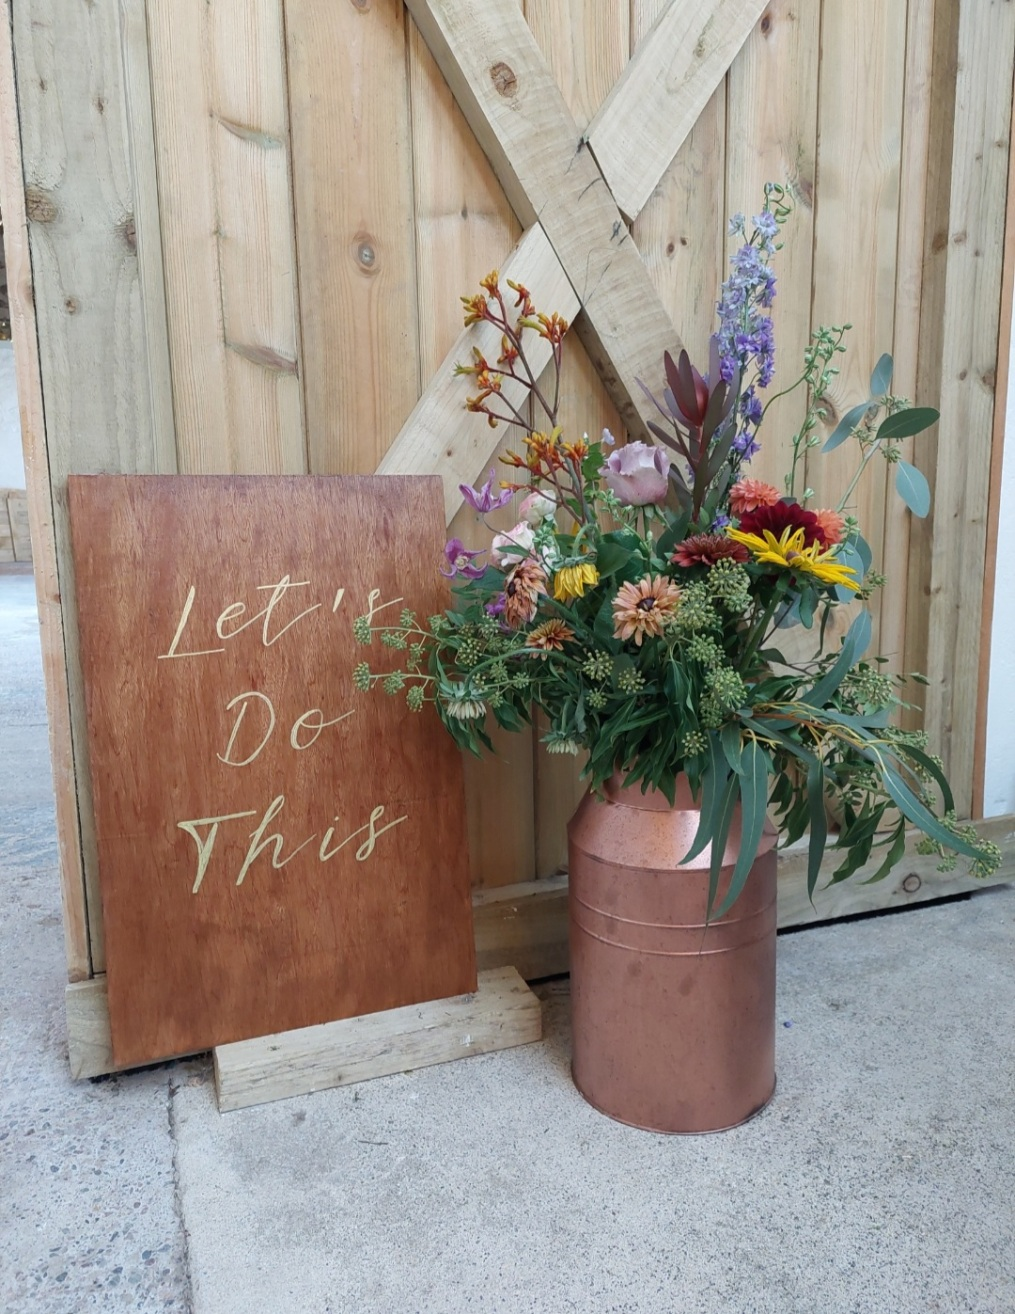 Let's Do This sign on wood - Hire Cost £8